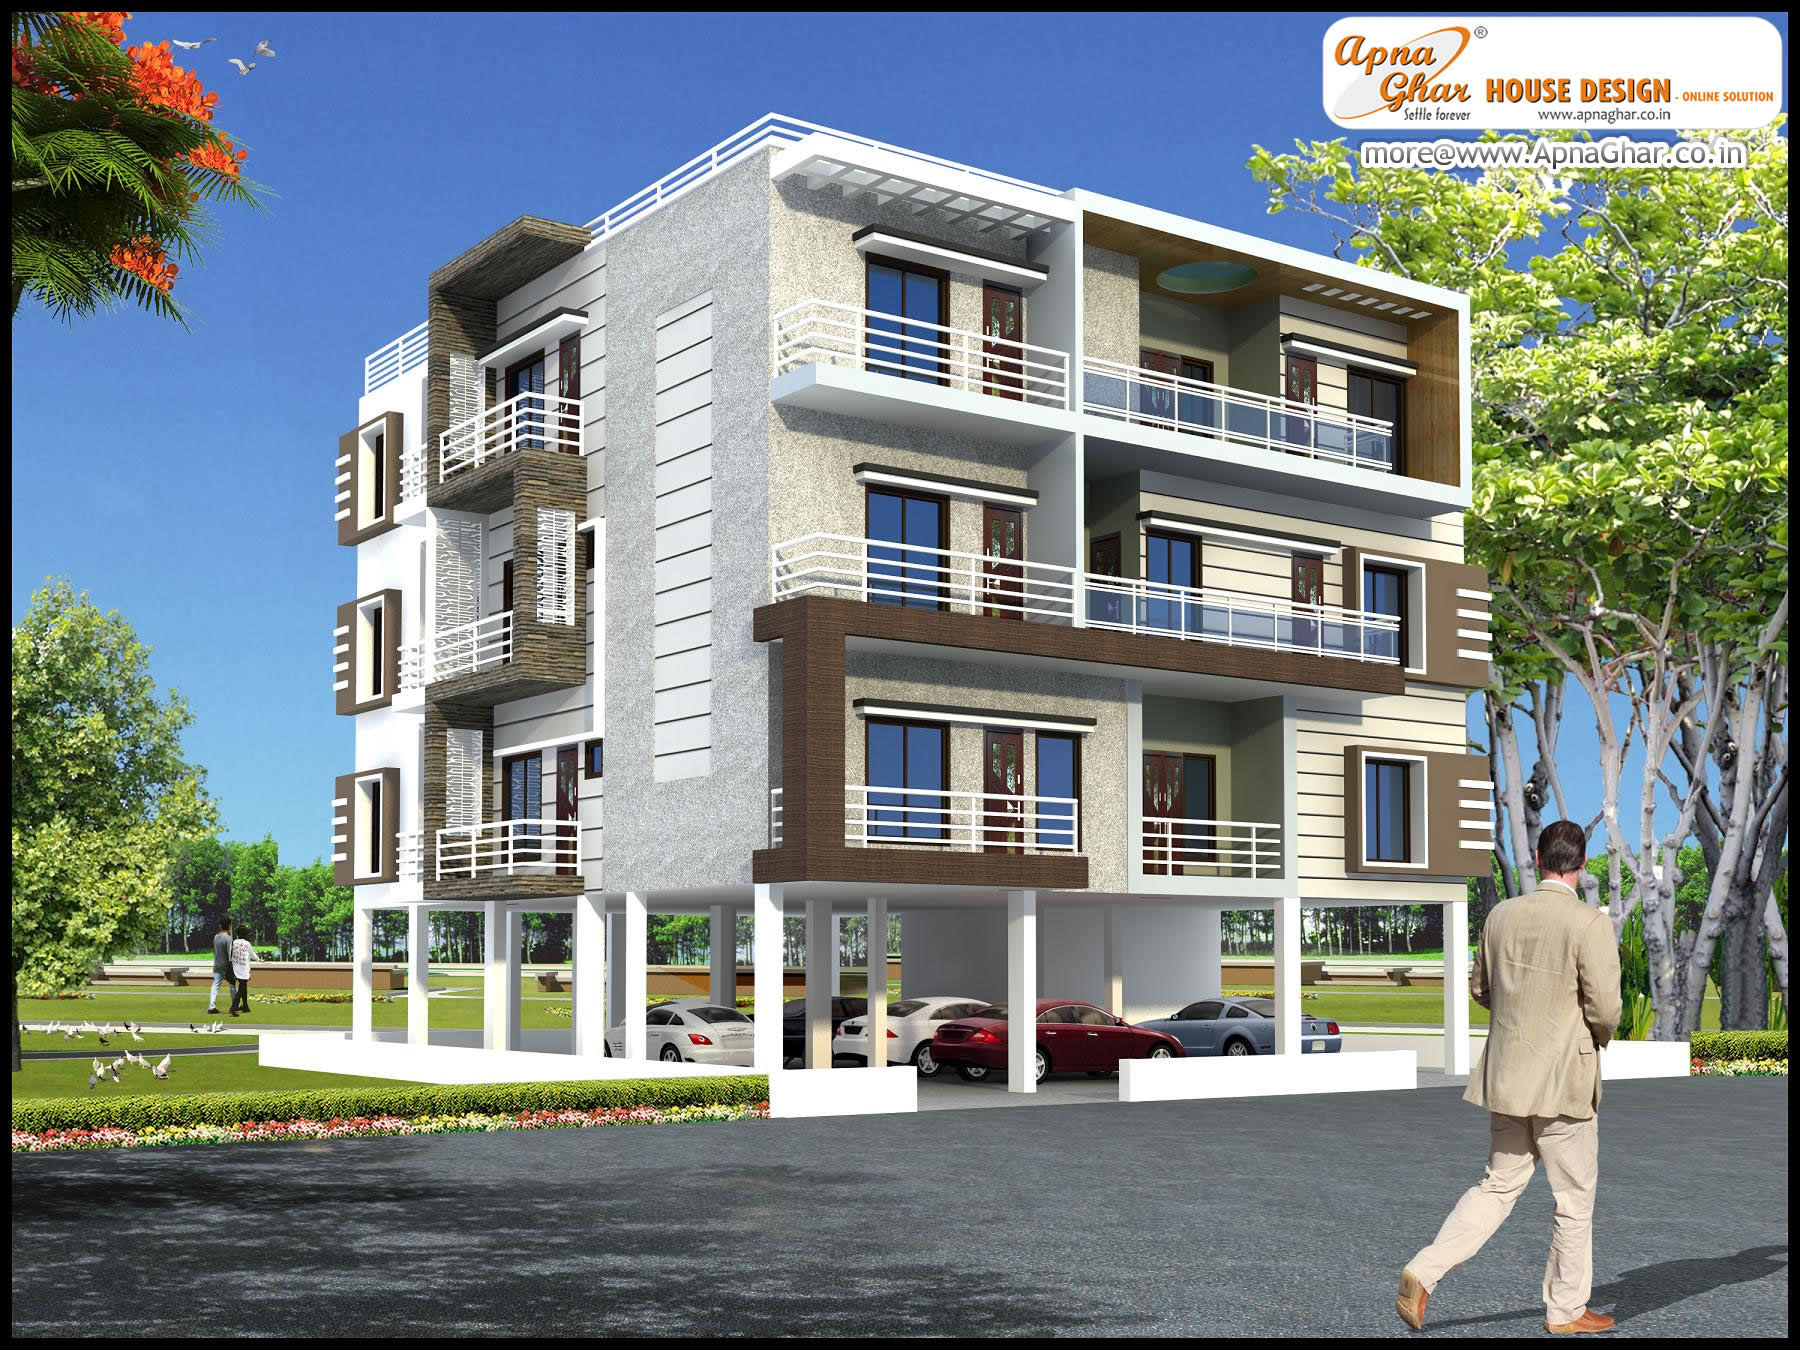 Master Modern Apartment Exterior Design An Online Complete Architectural Solution  Provider Company Click apartment design exterior